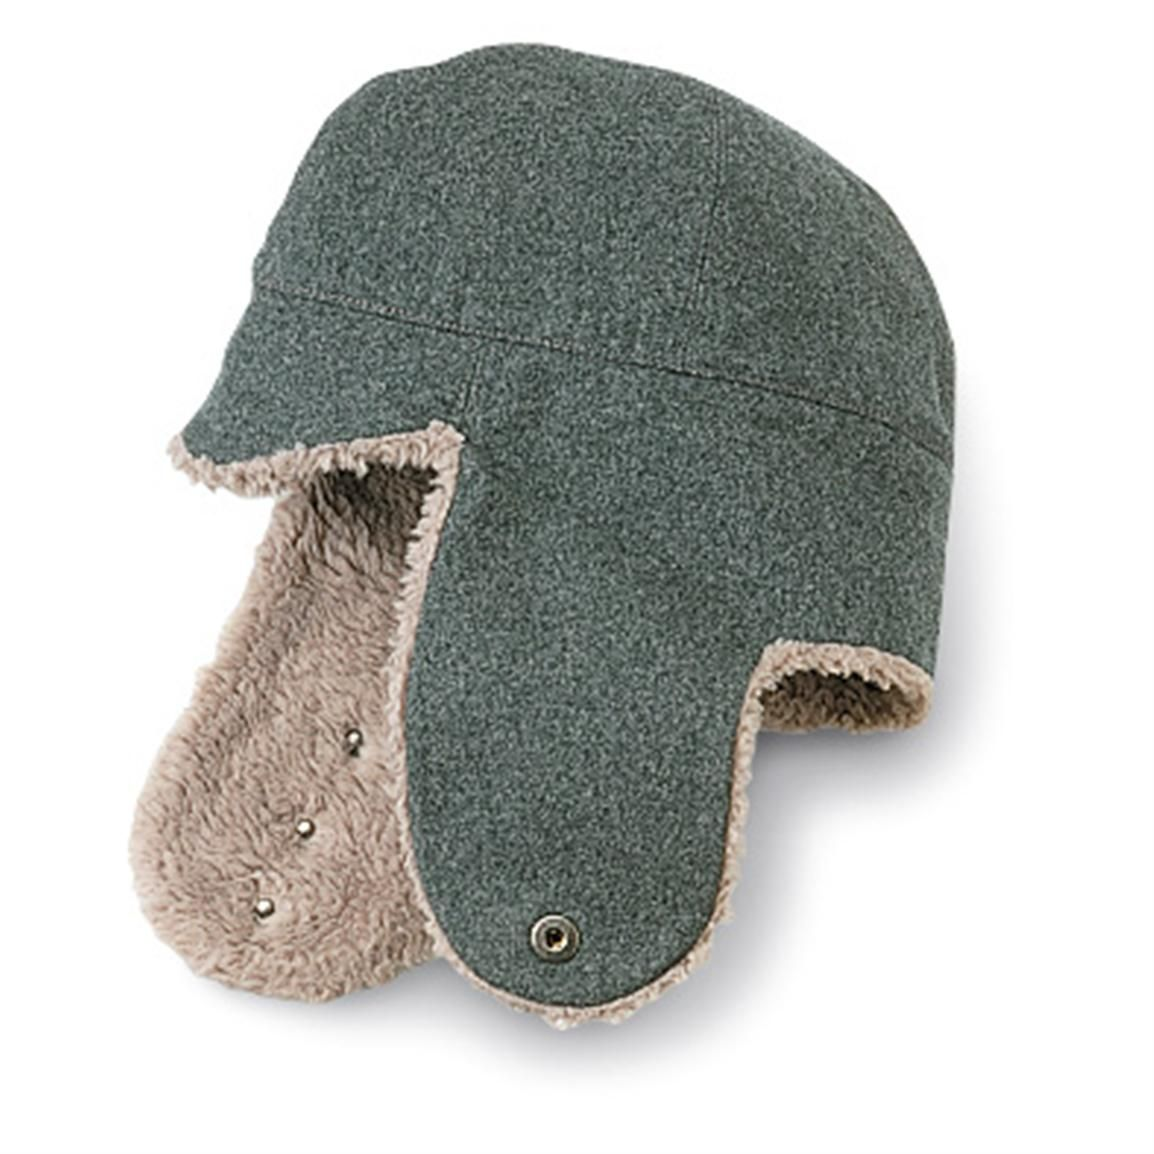 Swiss Military Surplus Winter Hats  025510dd15b